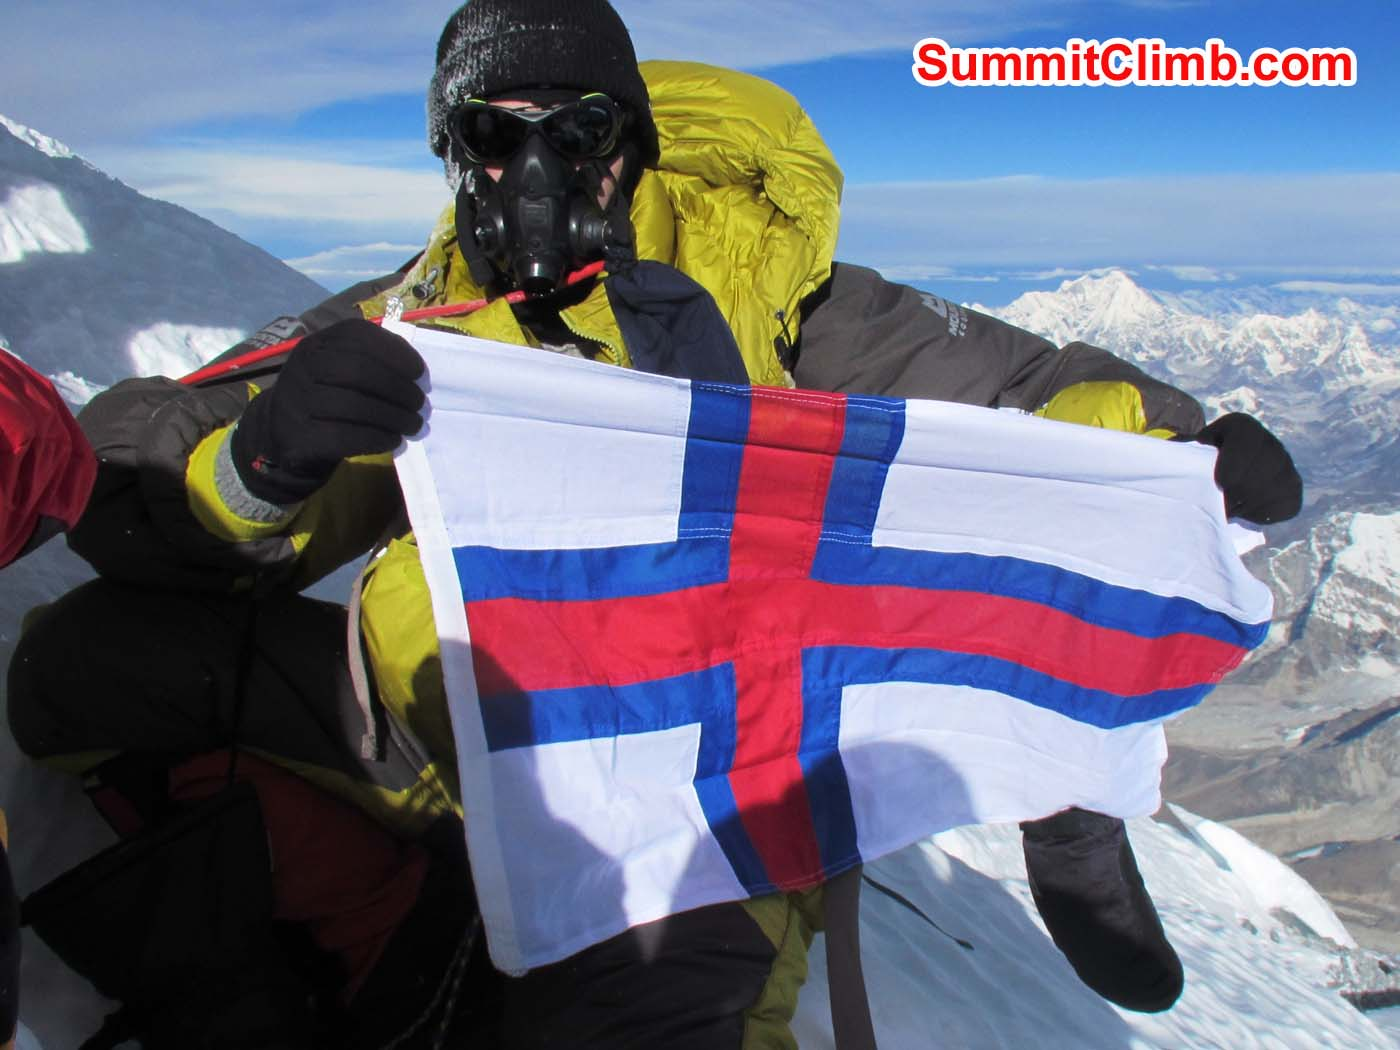 Arni Vatnhamar on summit of  Everest. First individual from Faroe Islands to summit Mount Everest. CONGRATULATONS!! Photo - Arni Vatnhamar